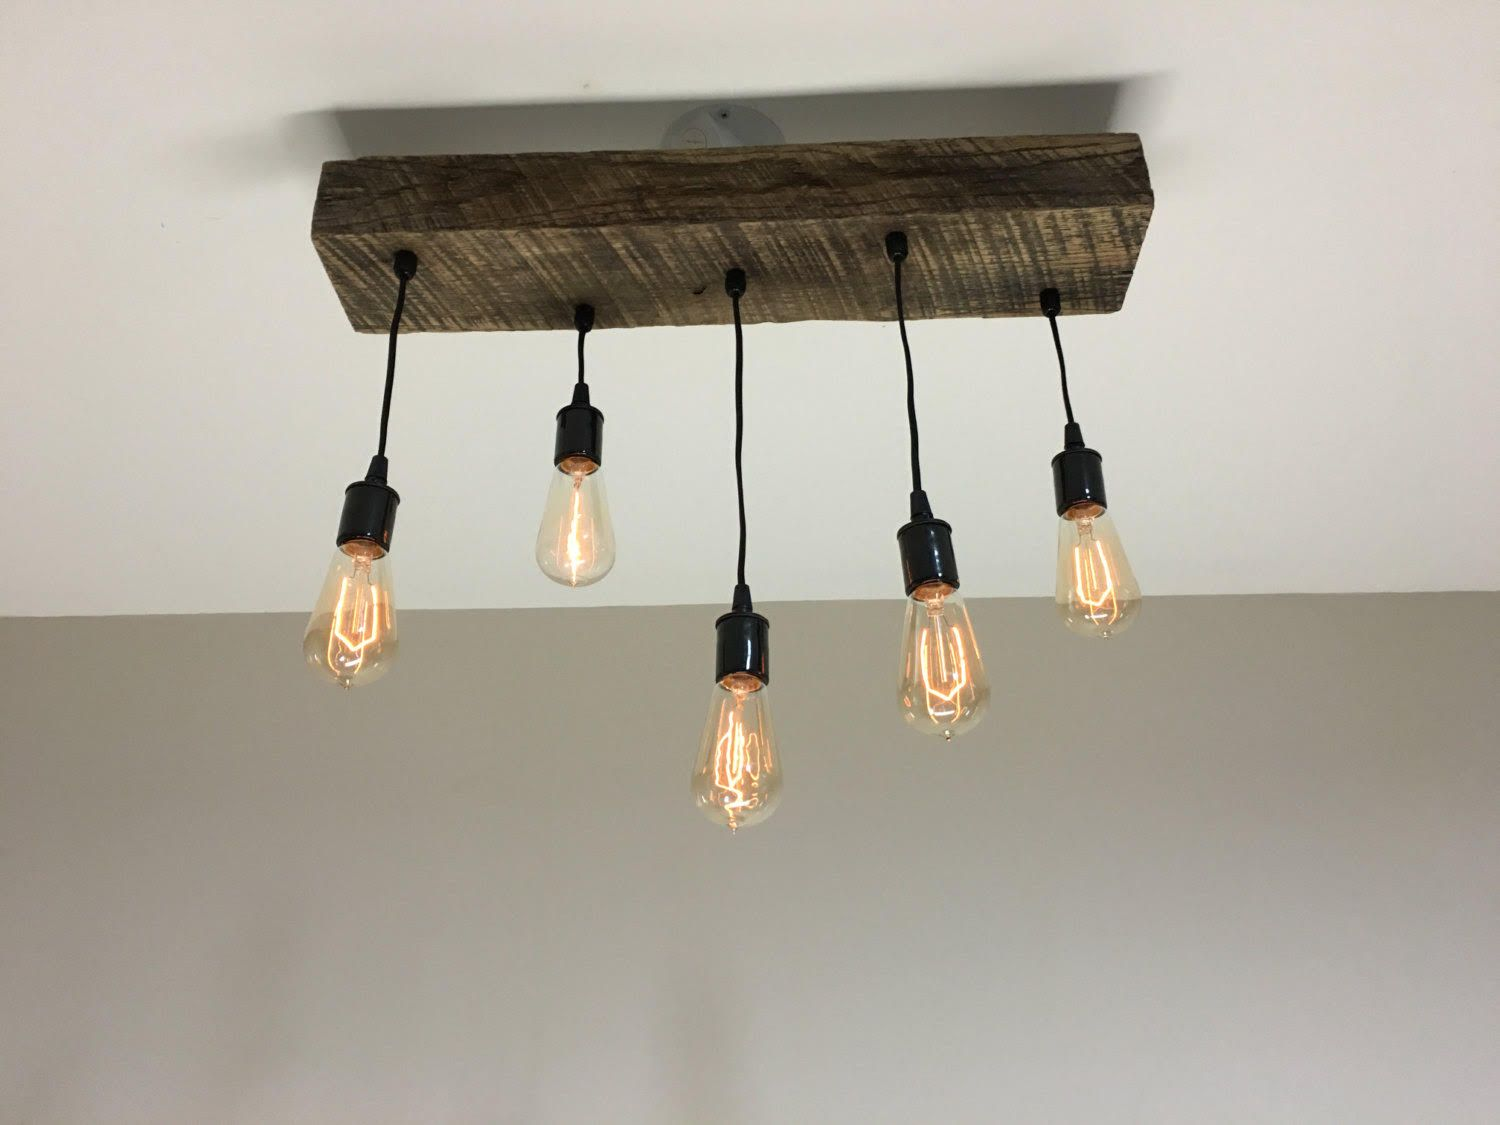 Buy Hand Crafted Reclaimed Barn Timber Beam Light Fixture With Hanging Edison Bulbs Made To Order From 7m Woodworking Custommade Com